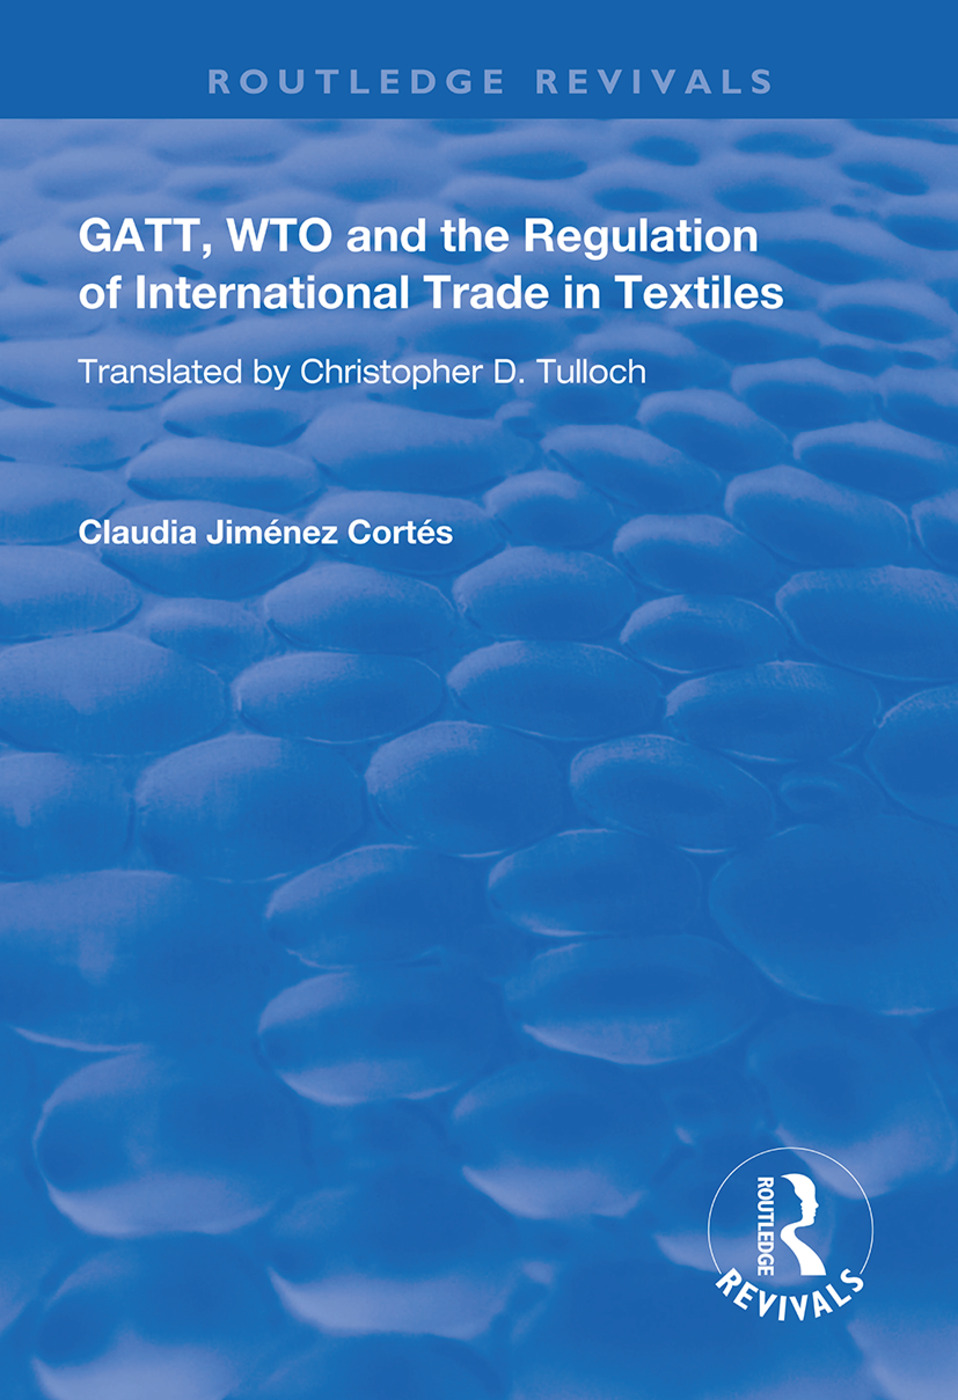 GATT, WTO and the Regulation of International Trade in Textiles book cover